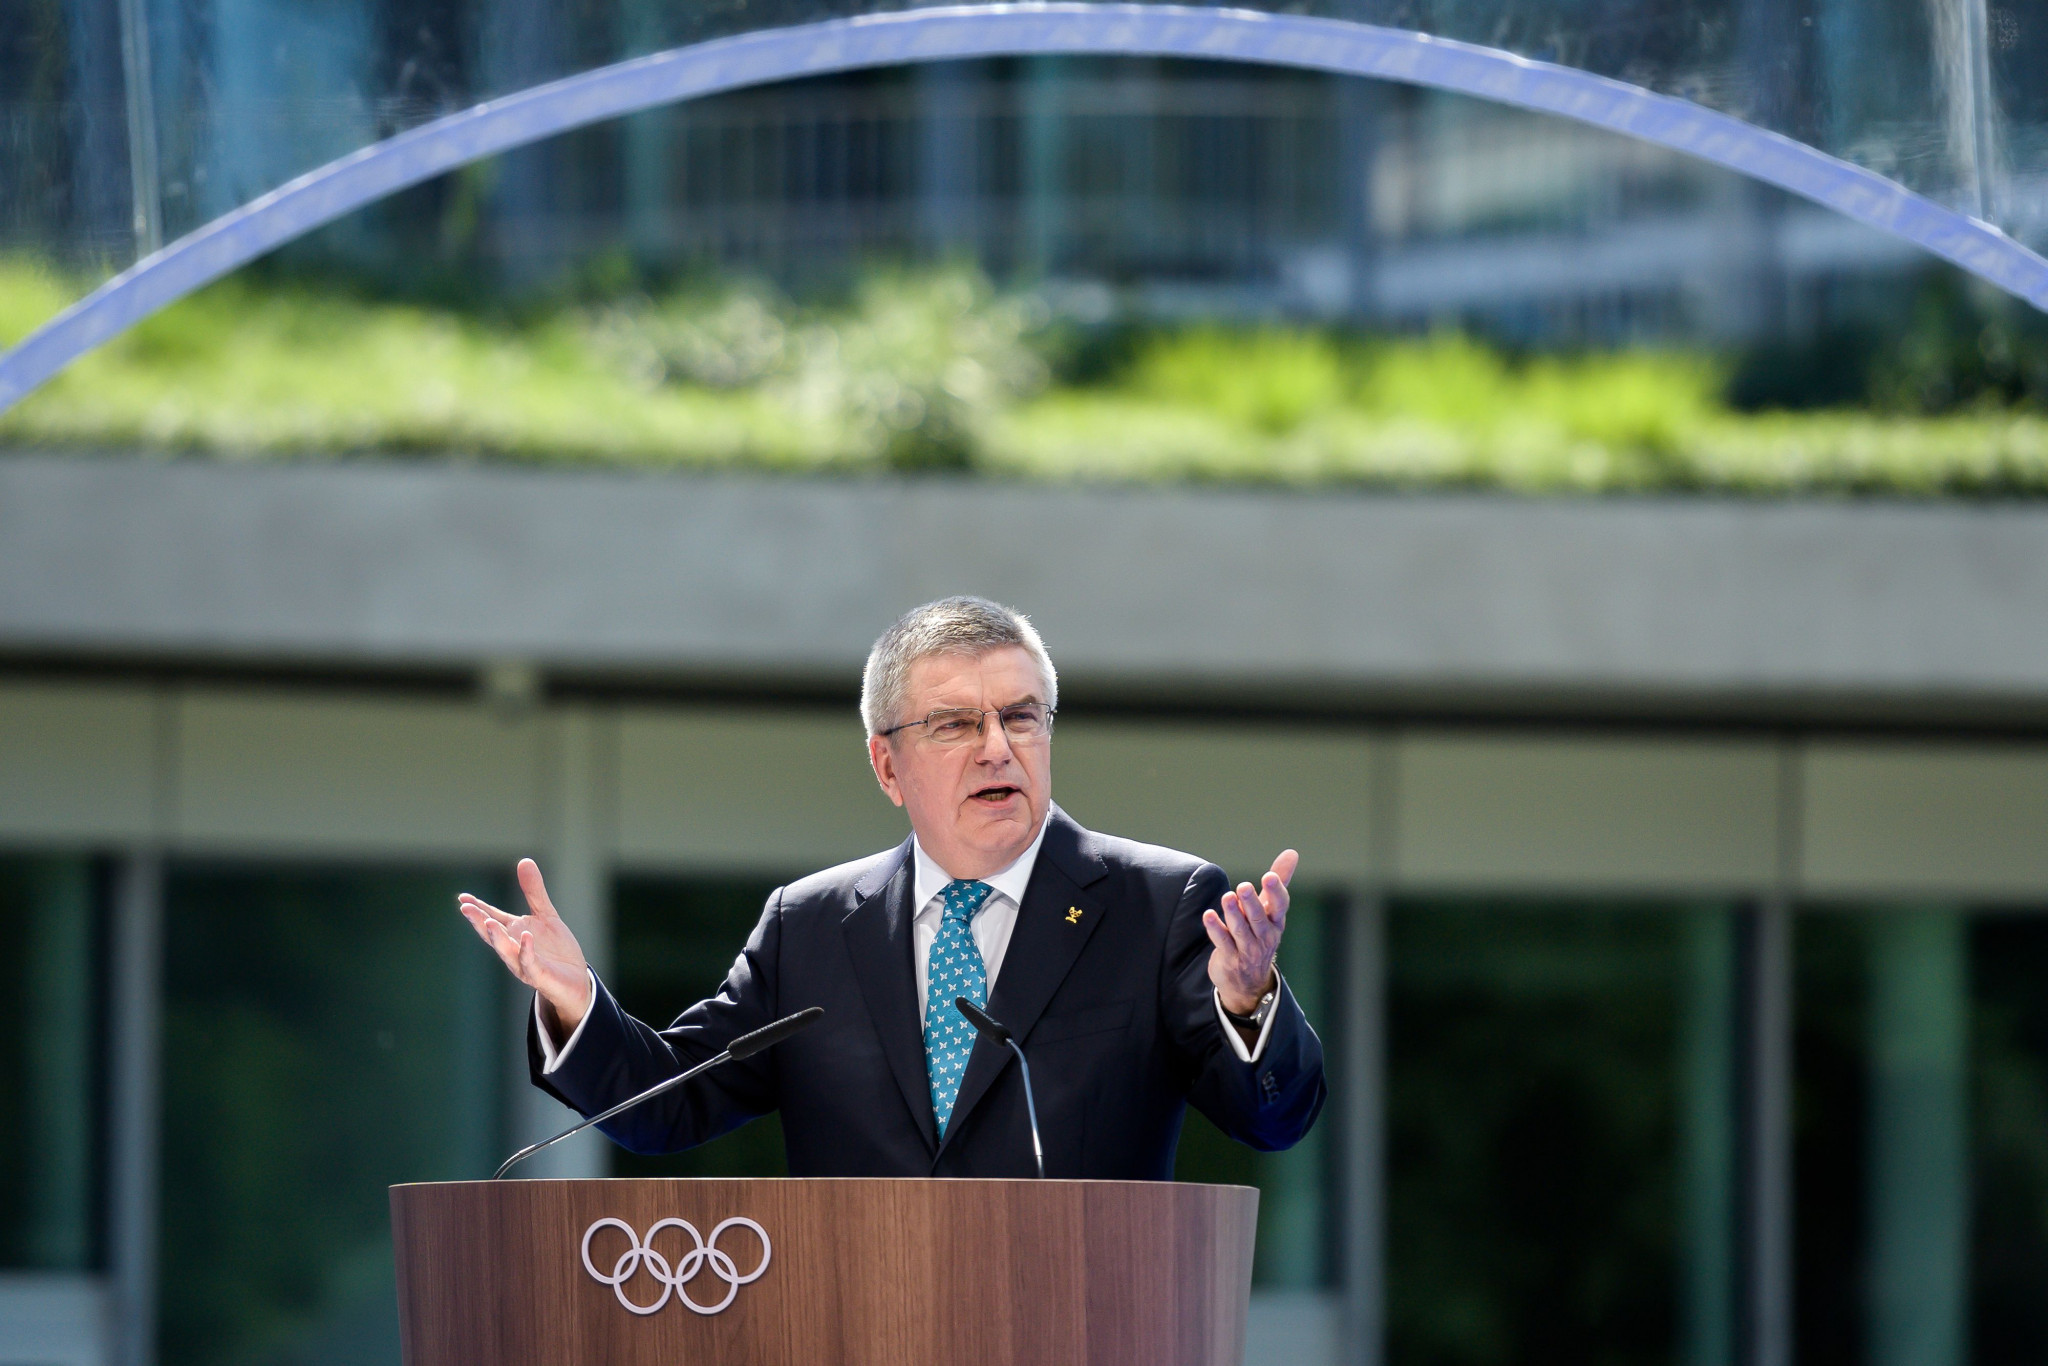 Christiana Figueres expressed her hope the IOC and its President Thomas Bach, seen here at the opening of Olympic House in Lausanne, which he claims is a fully sustainable building, can take more of a leadership role ©Getty Images